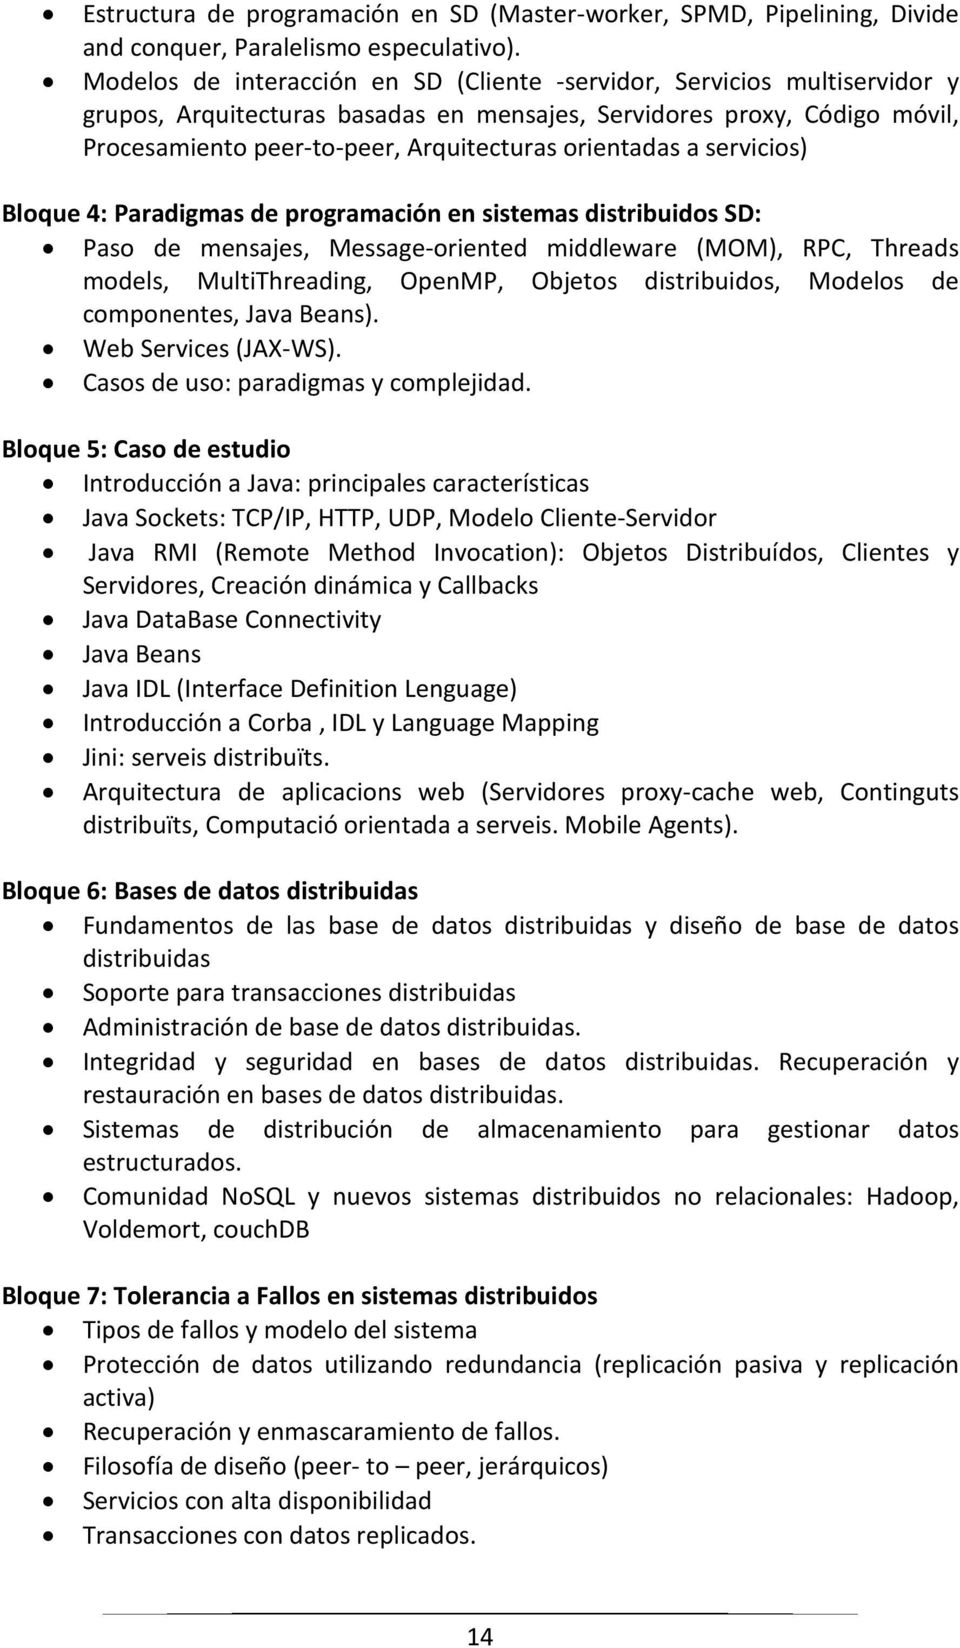 orientadas a servicios) Bloque 4: Paradigmas de programación en sistemas distribuidos SD: Paso de mensajes, Message-oriented middleware (MOM), RPC, Threads models, MultiThreading, OpenMP, Objetos